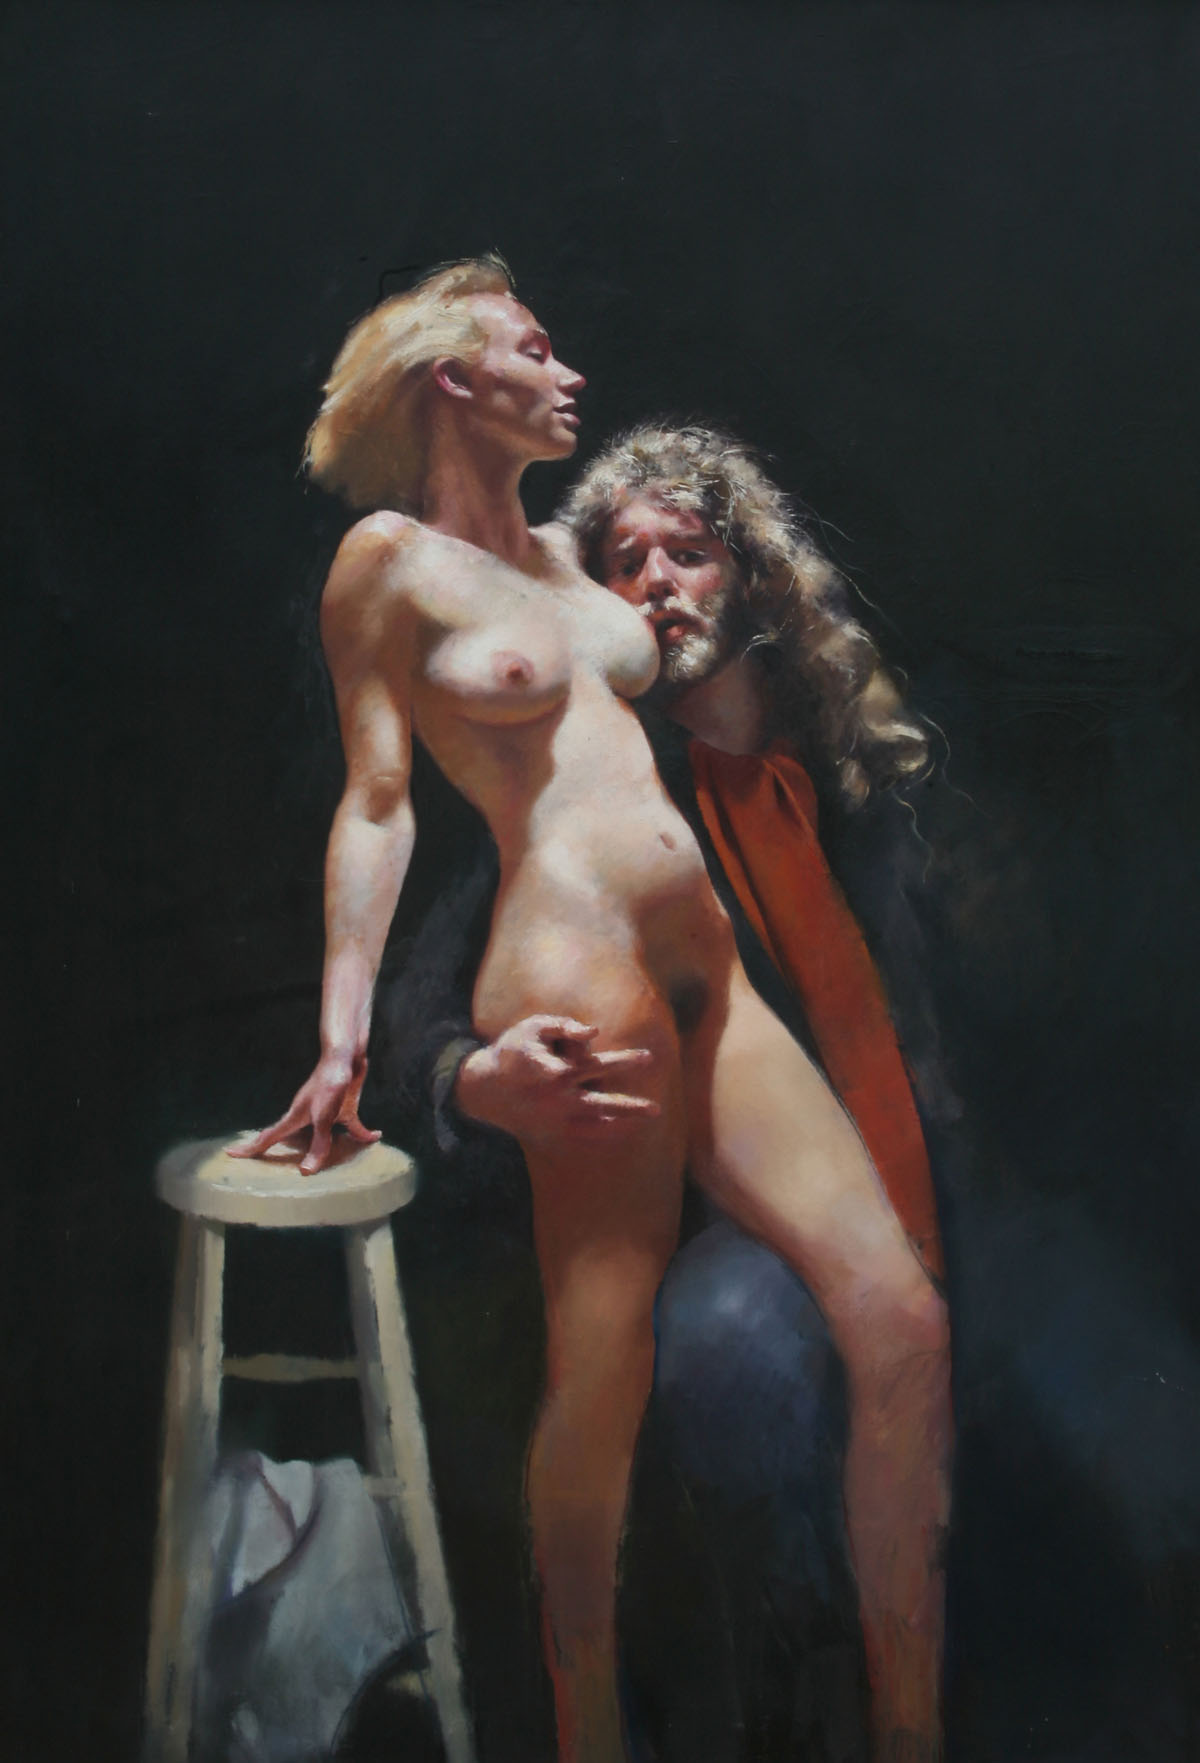 Robert Lenkiewicz, Painter